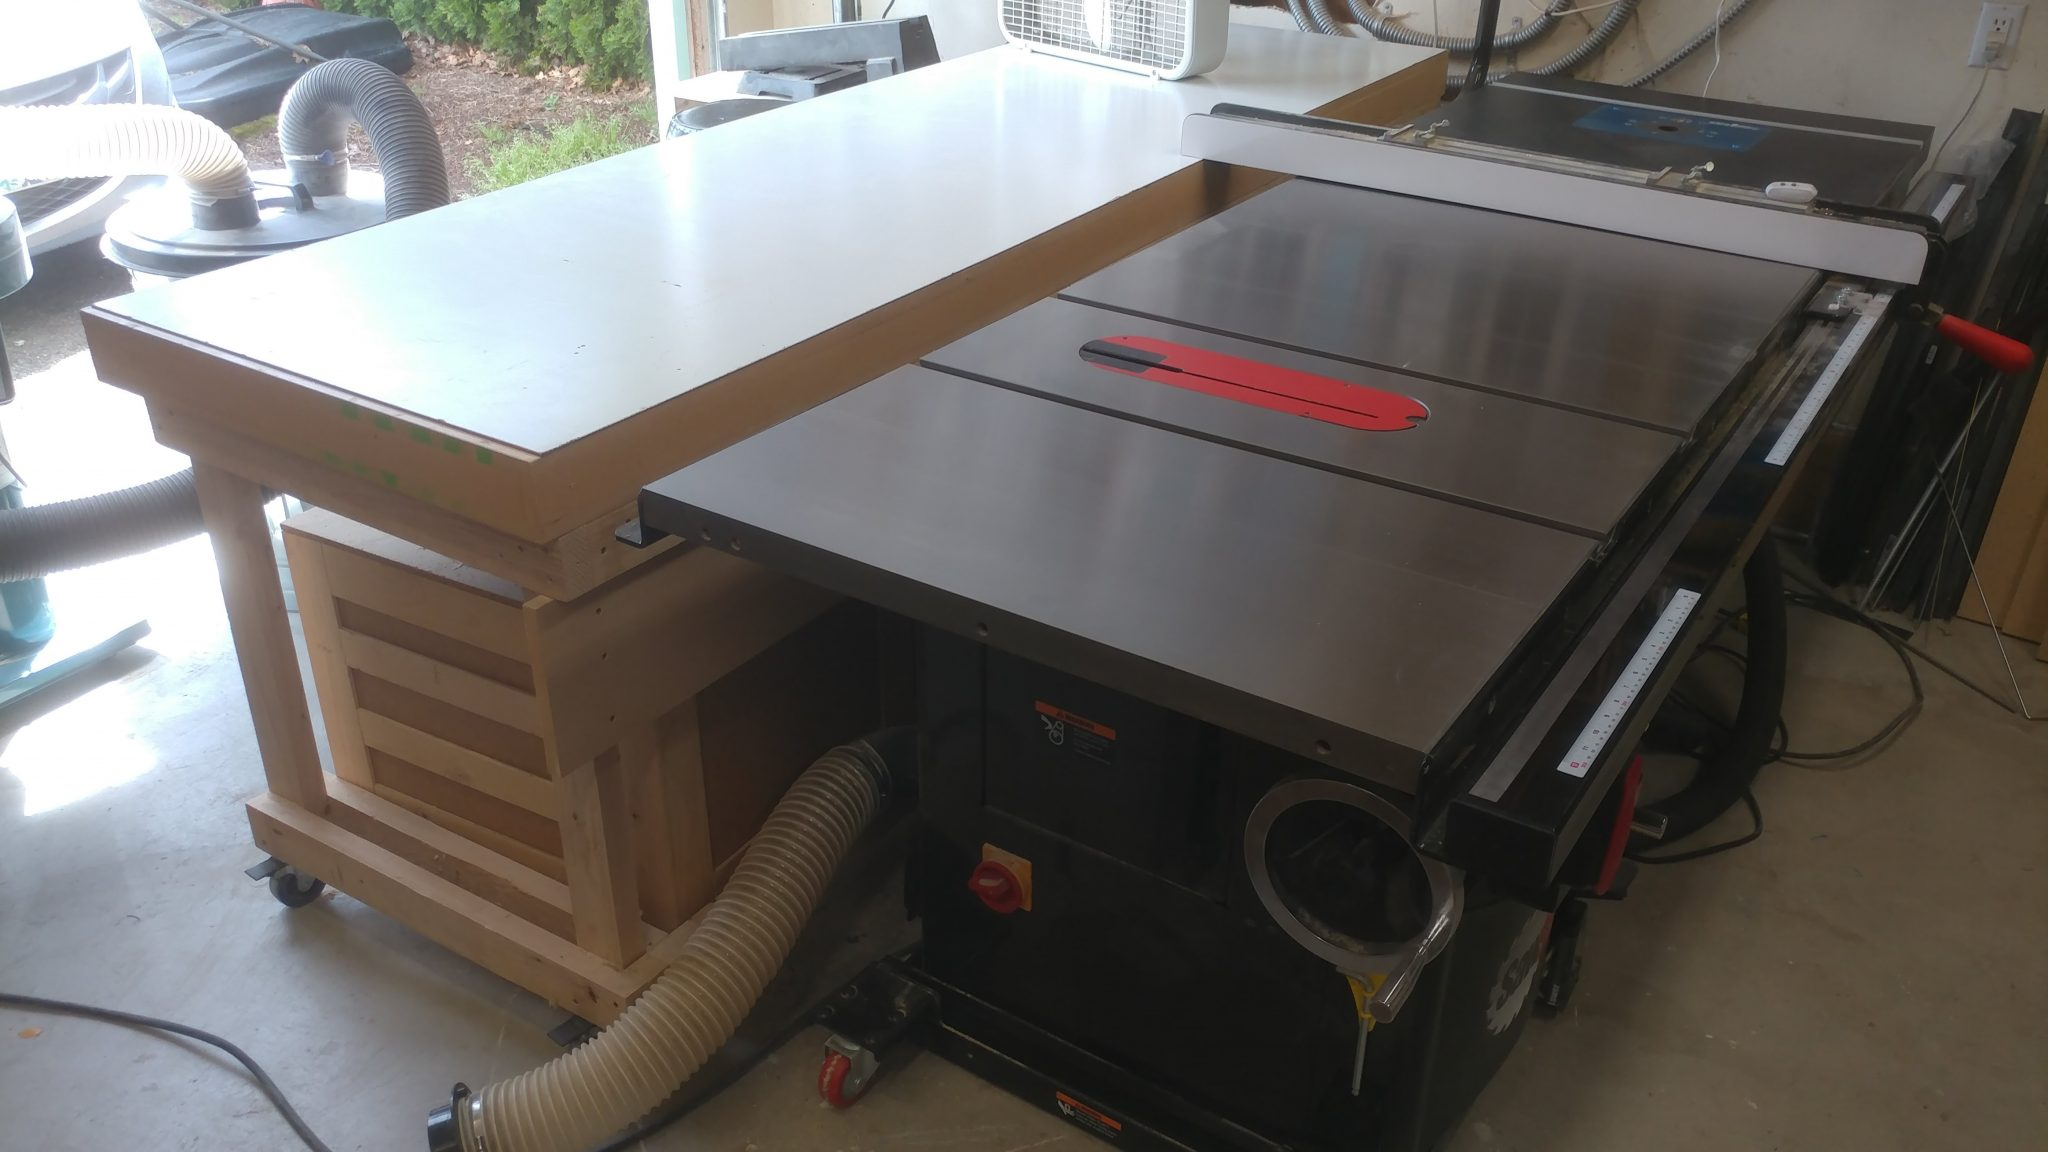 News – May 7th, 2018 – New Router Table and Emptying The Coffee Cans